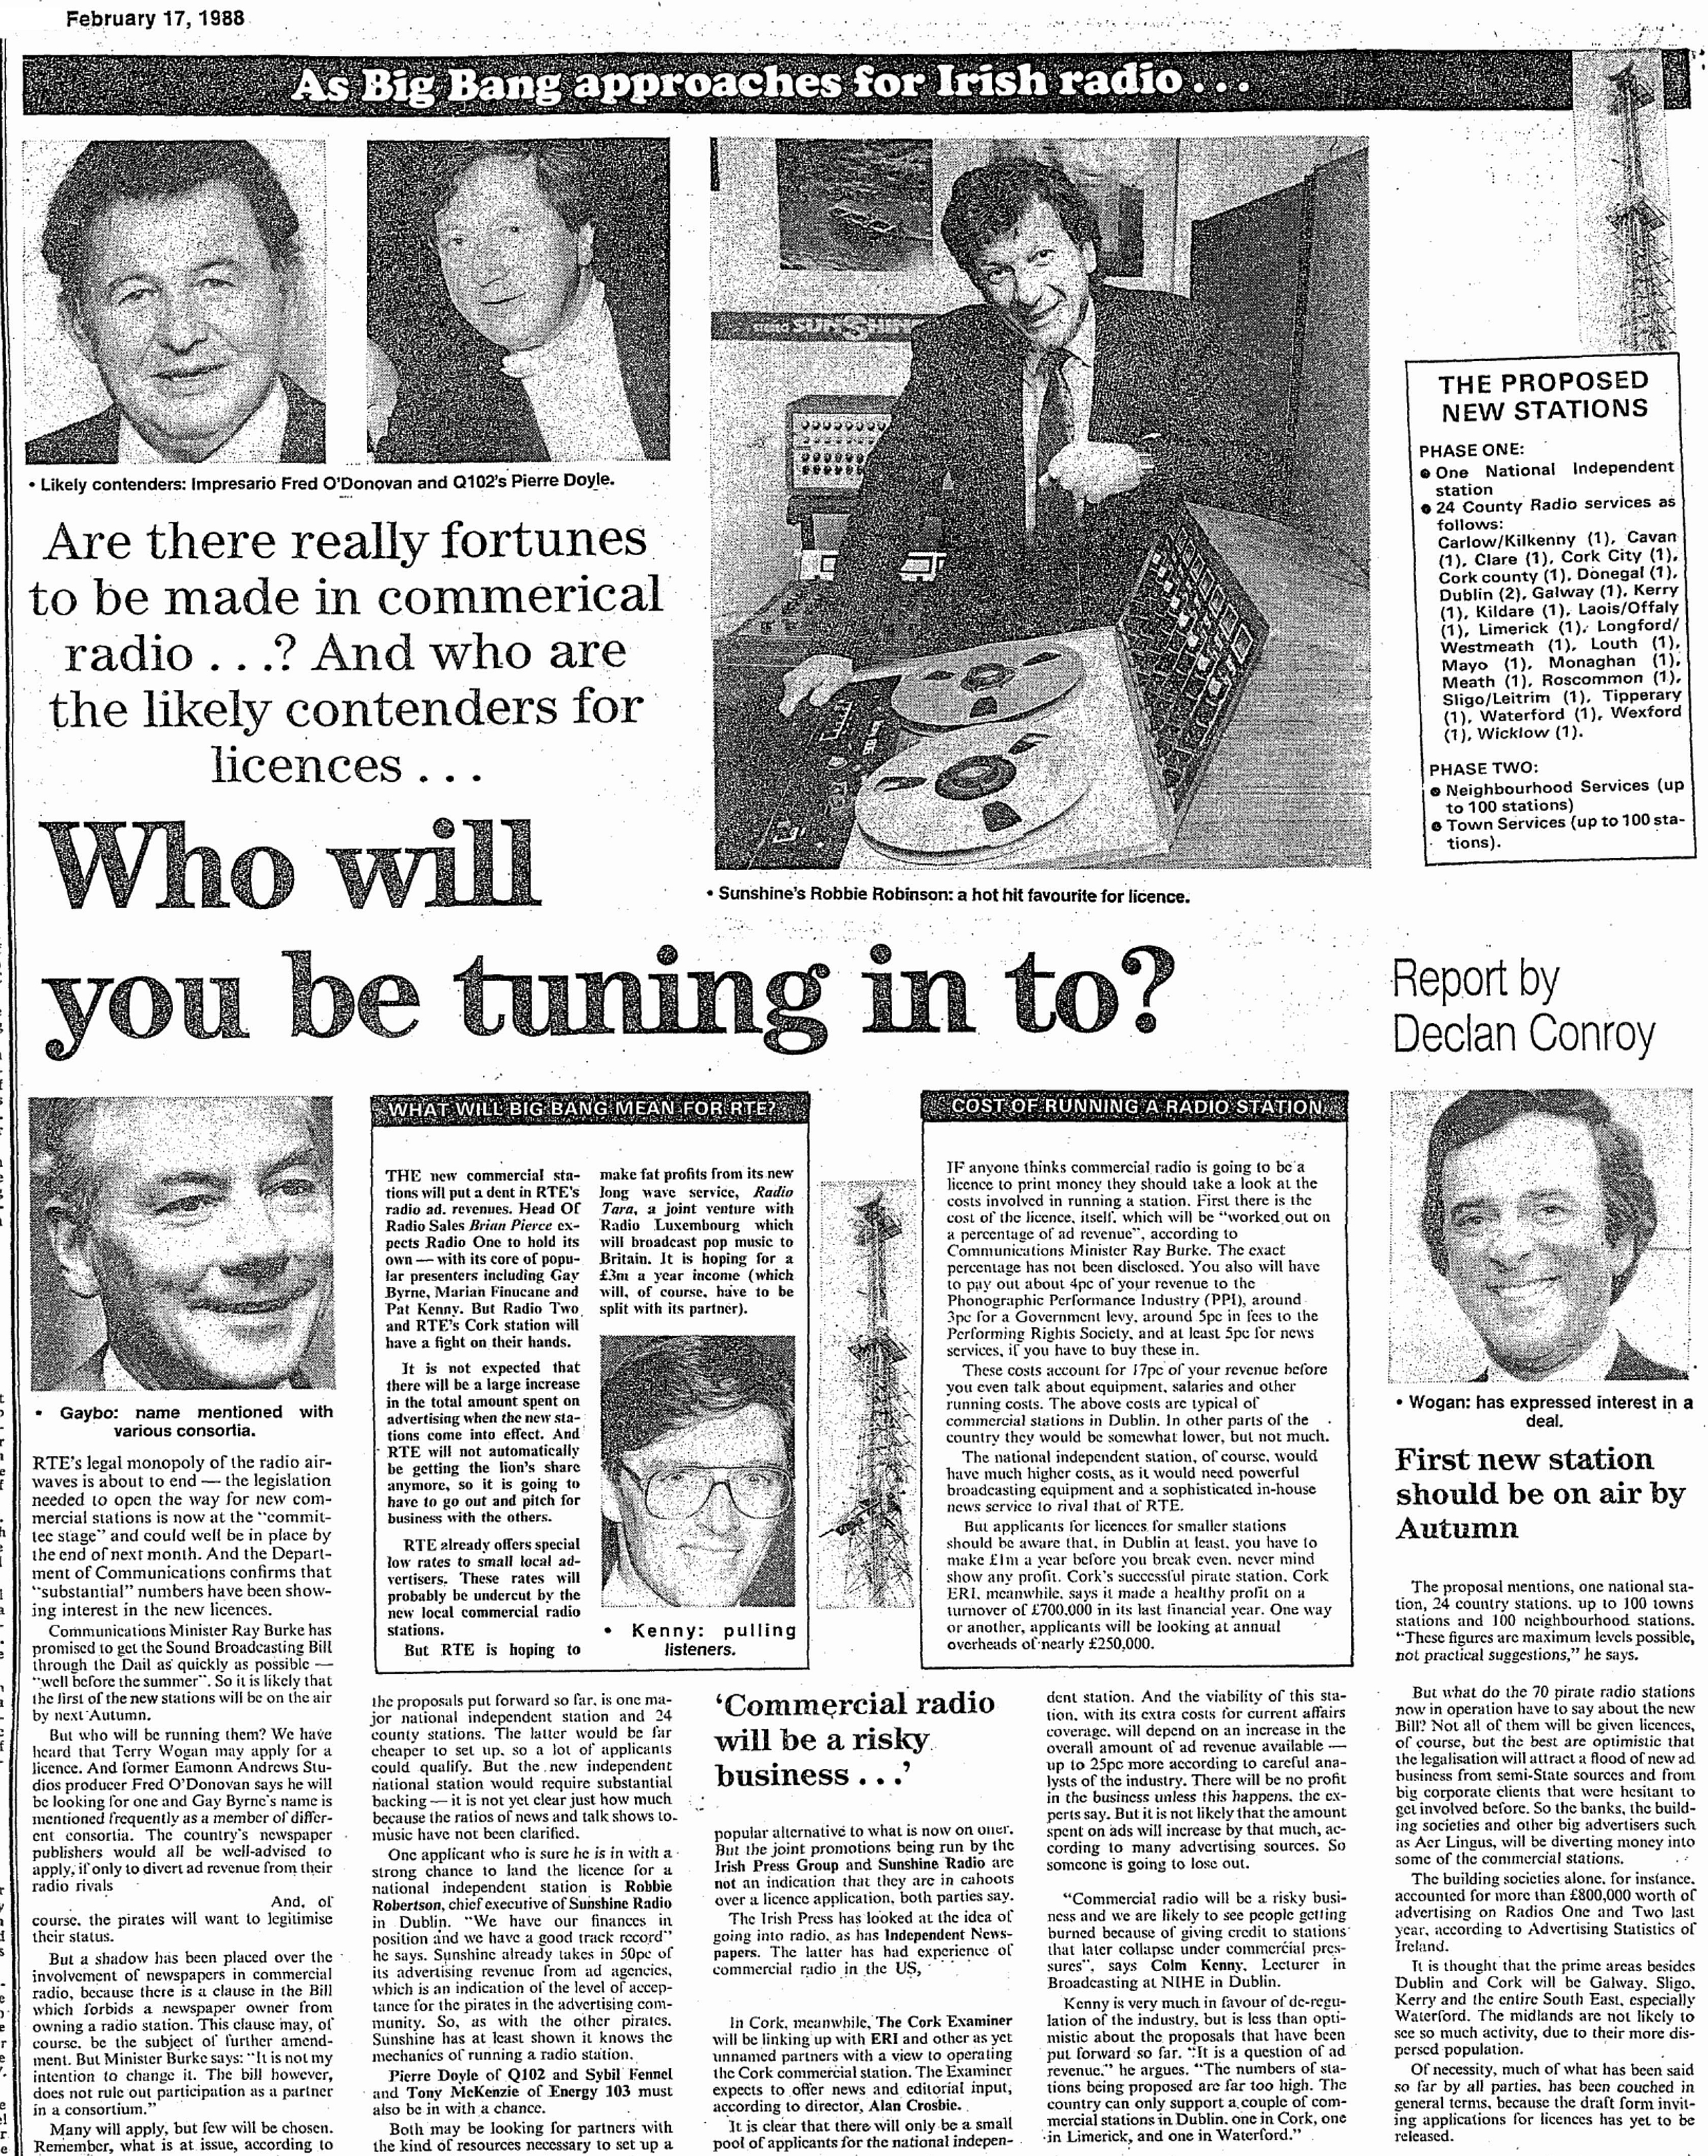 Who will you be tuning in to? was a newspaper headline from The Irish Independent dated February 17th 1988